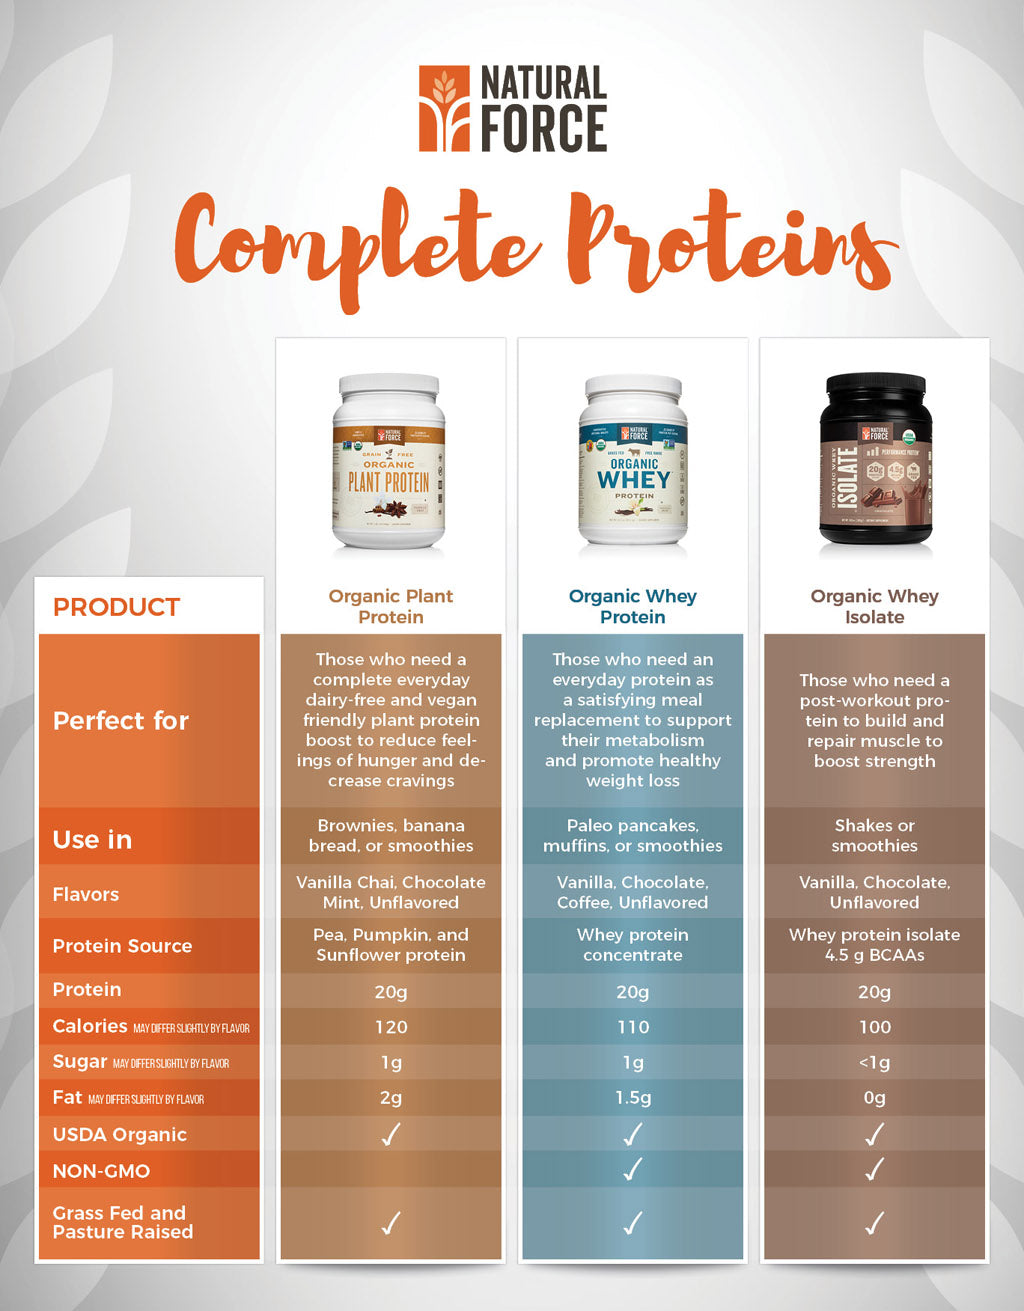 natural force complete proteins comparison chart